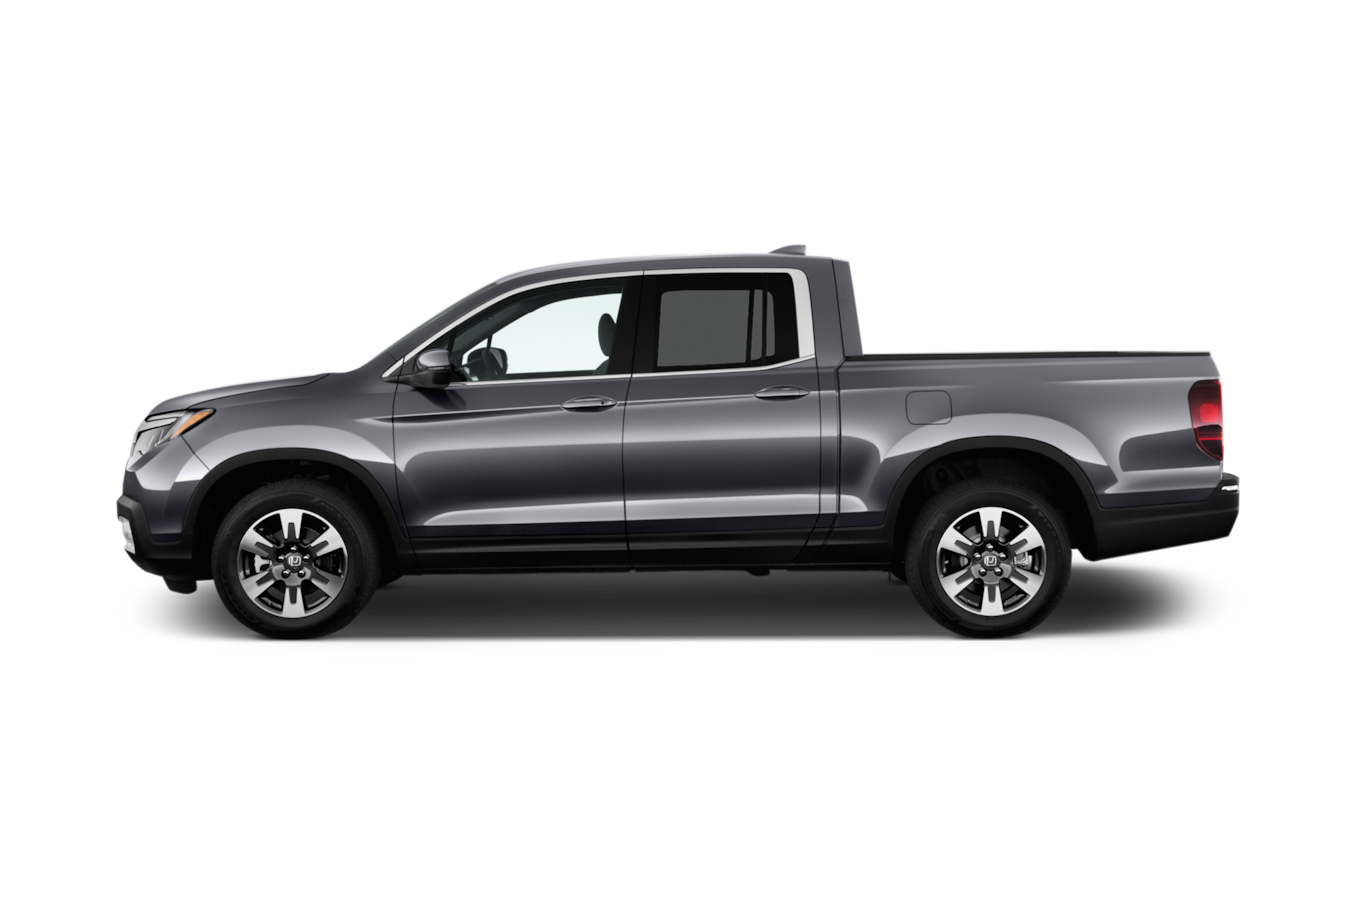 19 All New Best 2019 Honda Ridgeline Lift Kit Price Configurations for Best 2019 Honda Ridgeline Lift Kit Price